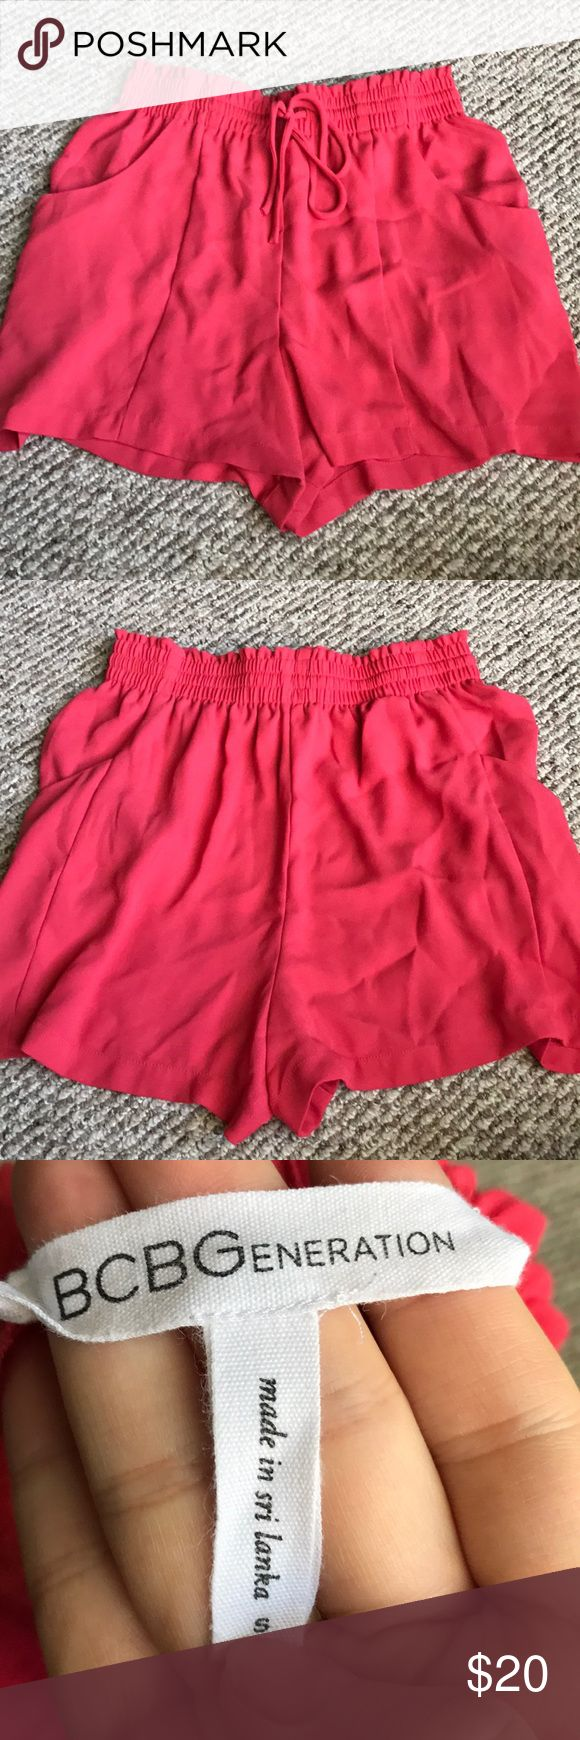 Crepe Shorts Worn twice. No flaws. Coral Color BCBGeneration Shorts